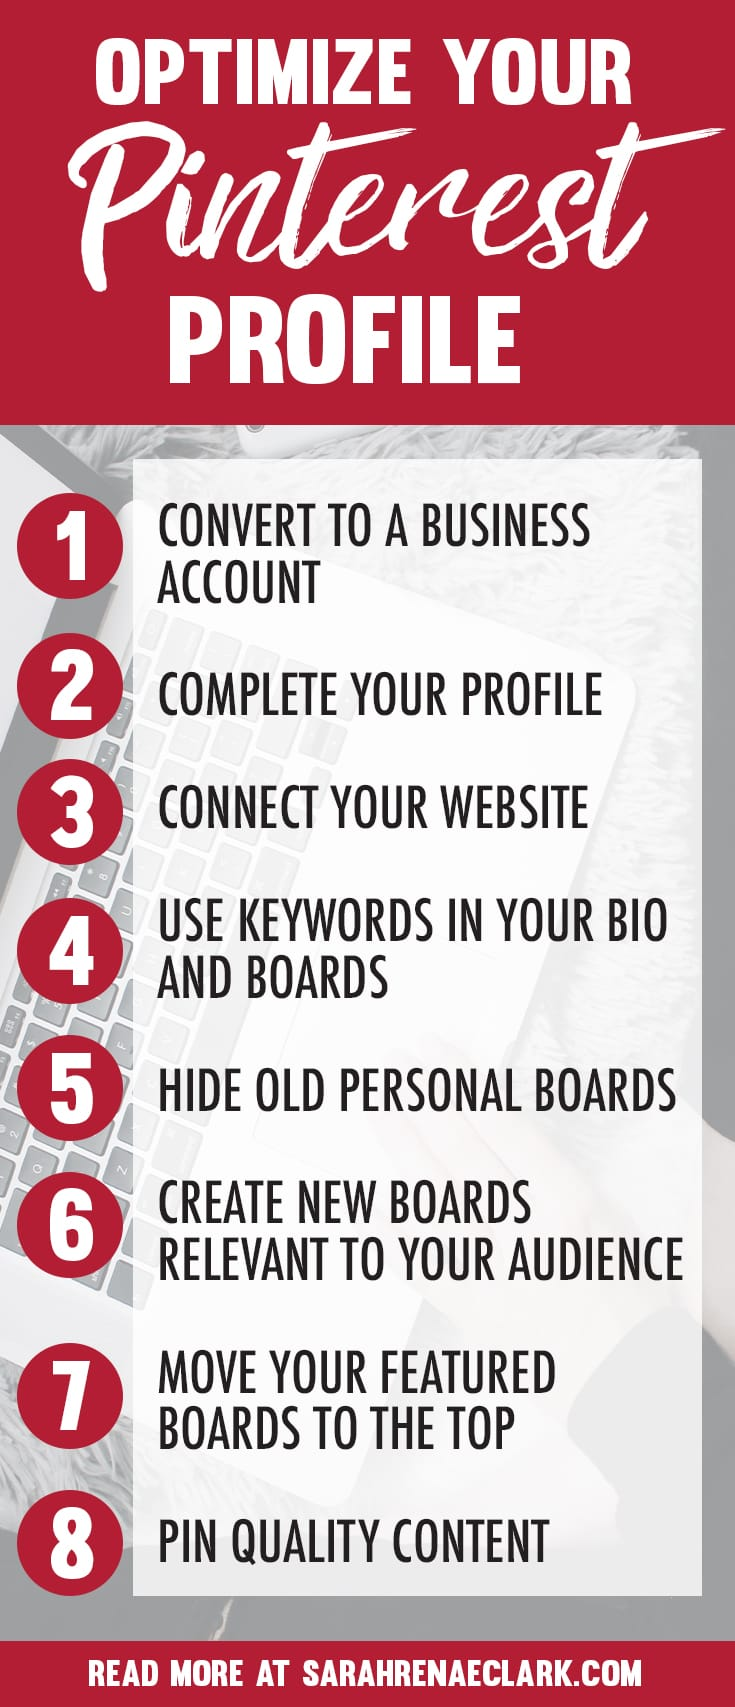 Pinterest marketing tips to optimize your Pinterest Profile and Create an Account That Attracts Followers